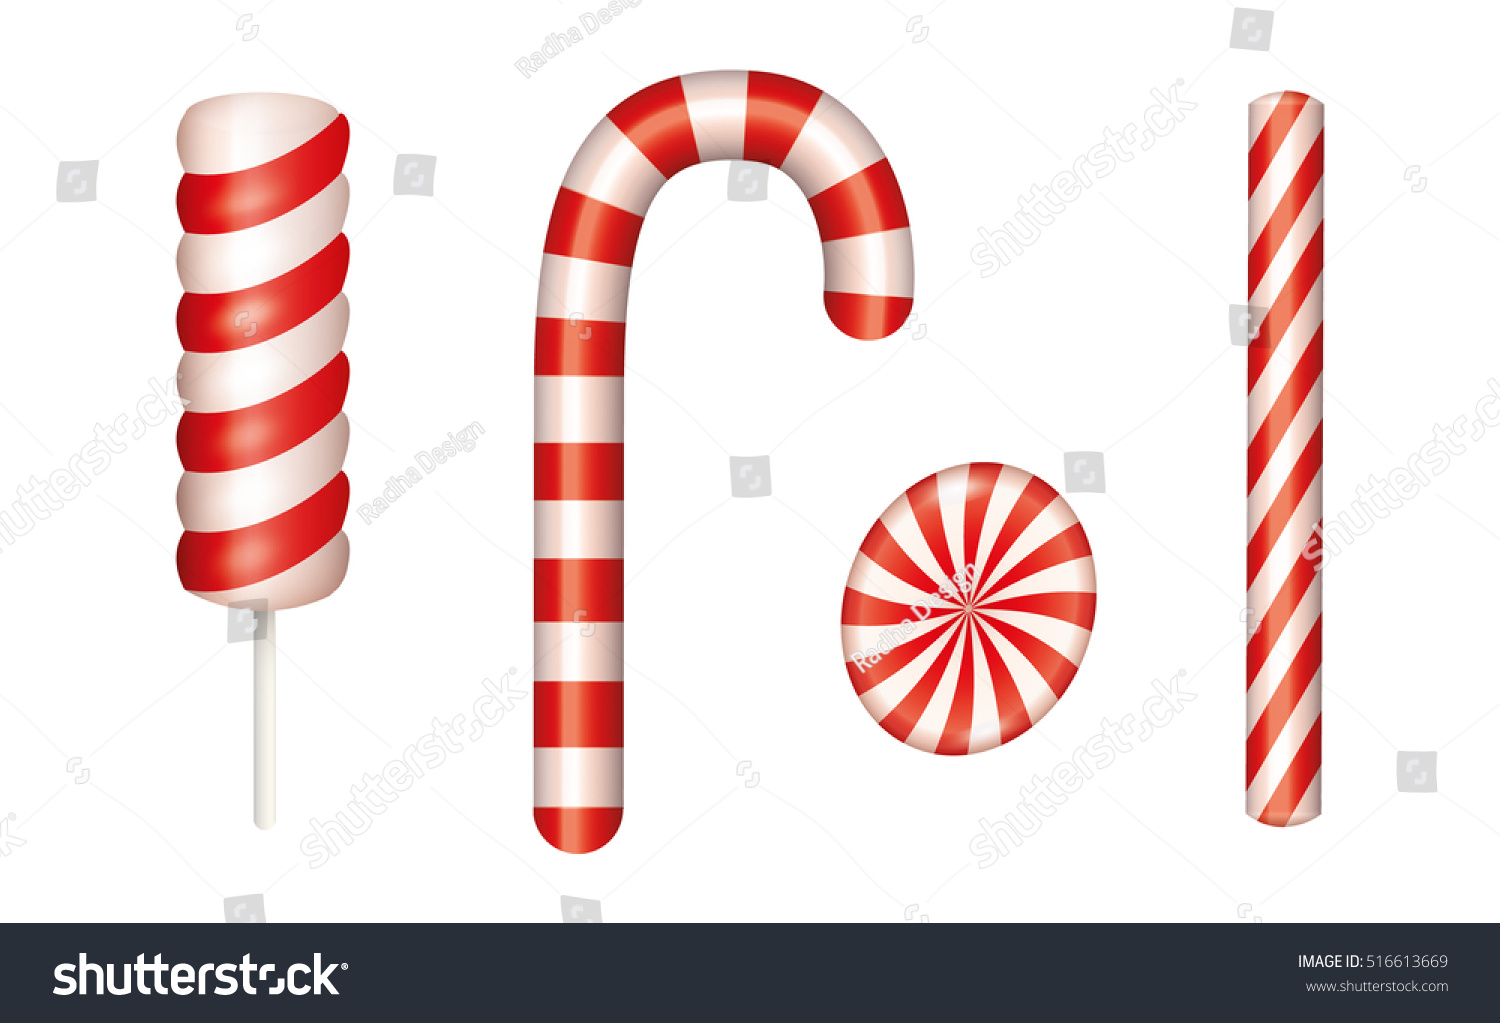 Candy Cane Stick Clipart.